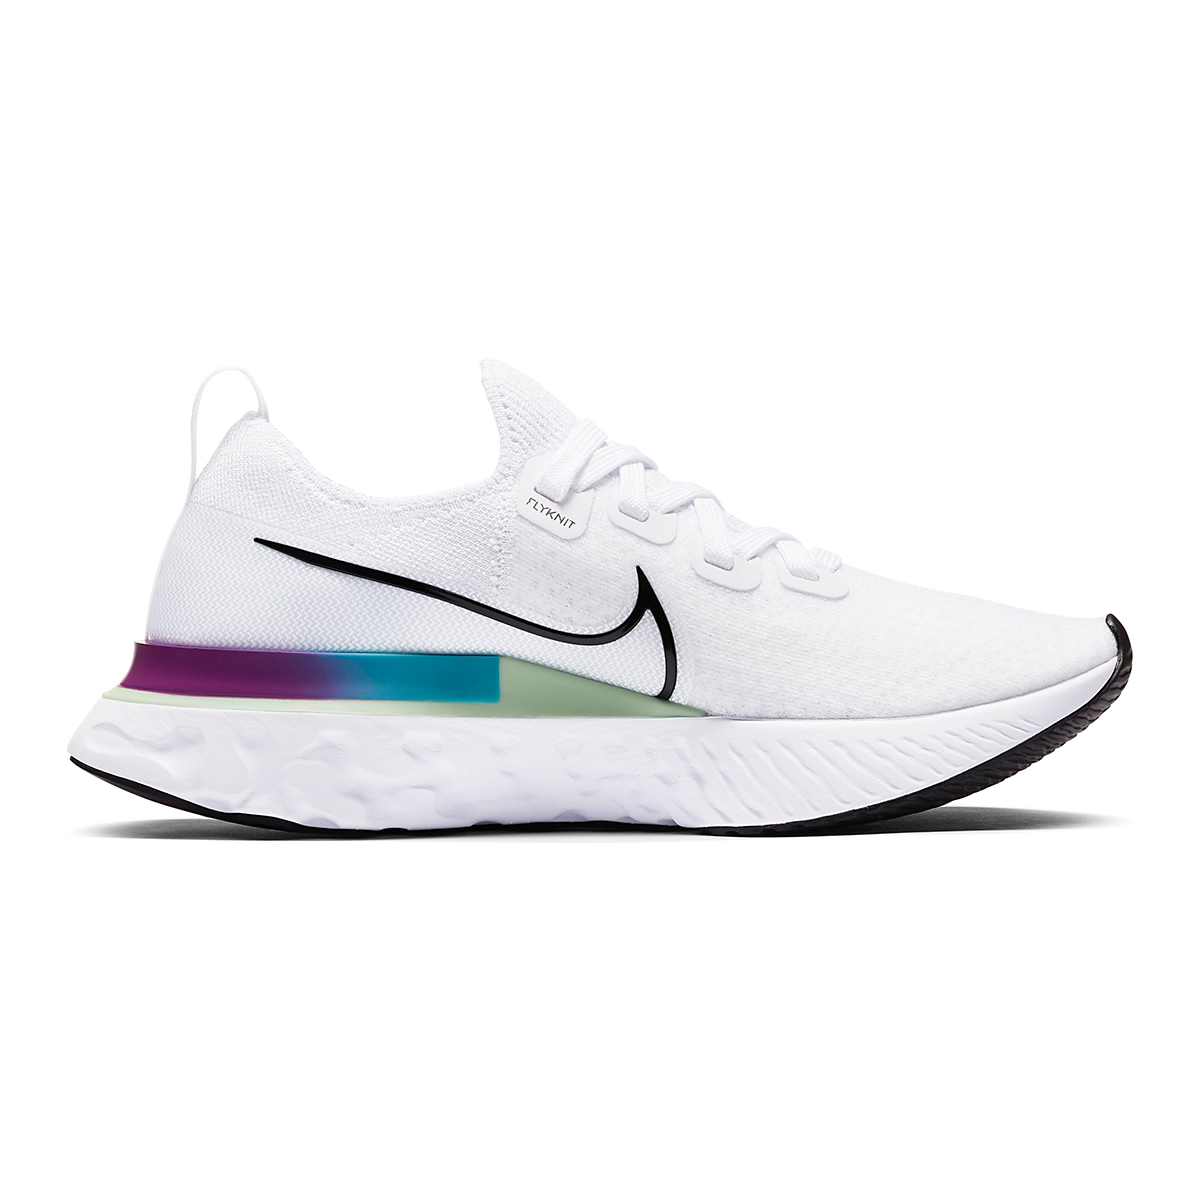 Women's Nike React Infinity Run Flyknit Running Shoes - Color: White/Vapor Green/Oracle Aqua/Black - Size: 5 - Width: Regular, White/Vapor Green/Oracle Aqua/Black, large, image 2